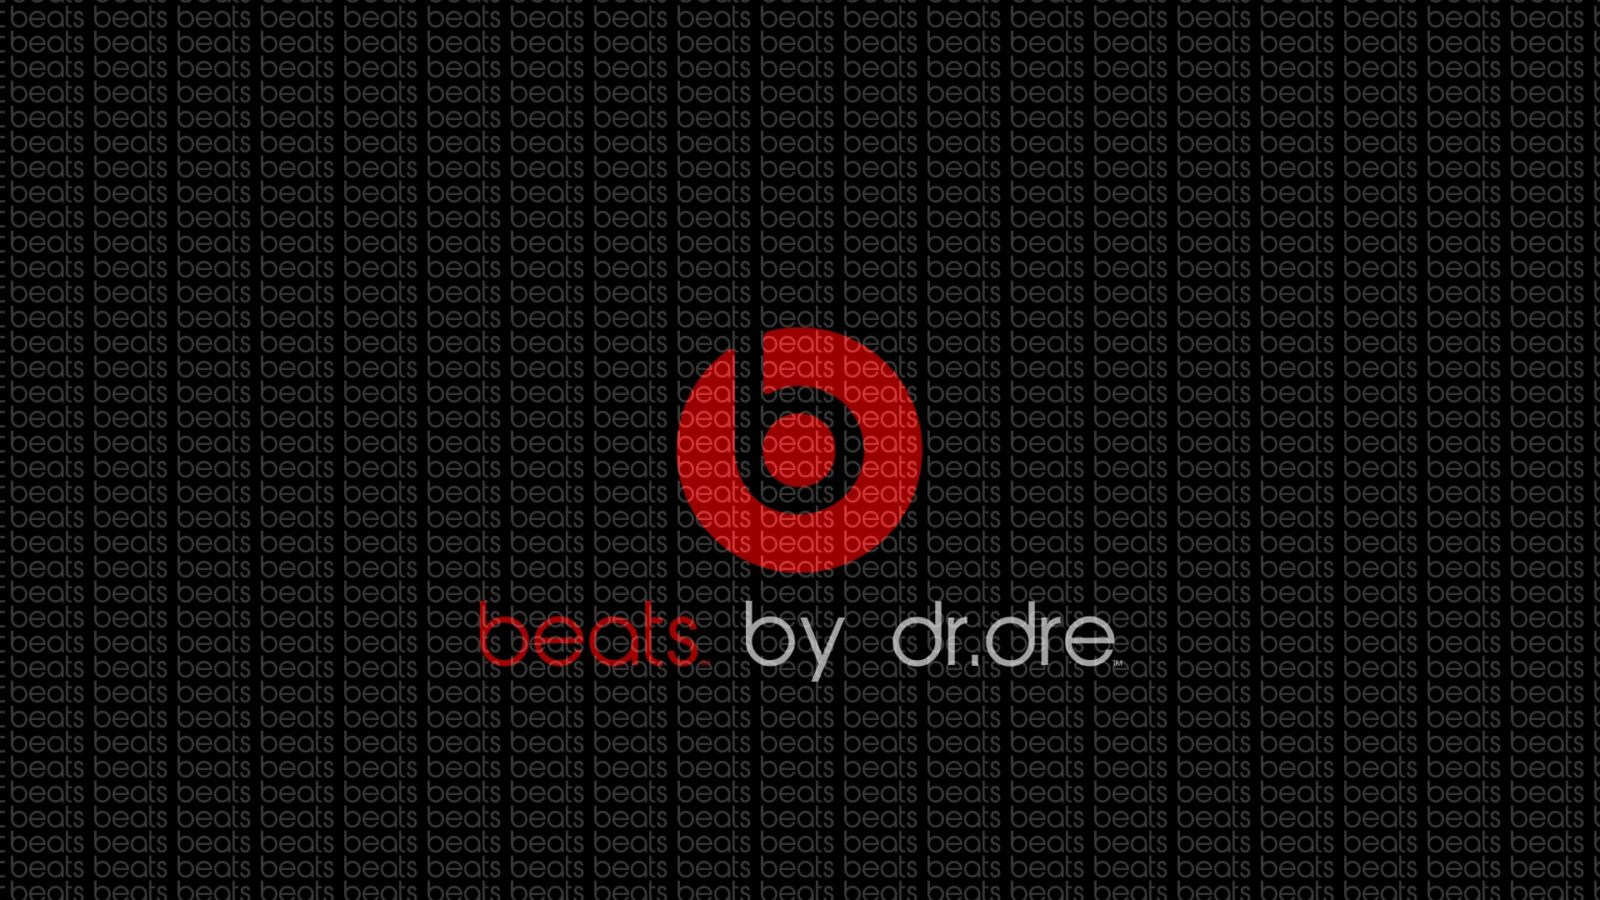 Car Stereo Wallpaper Beats By Dr Dre Hd Wallpapers Free Download Headphones